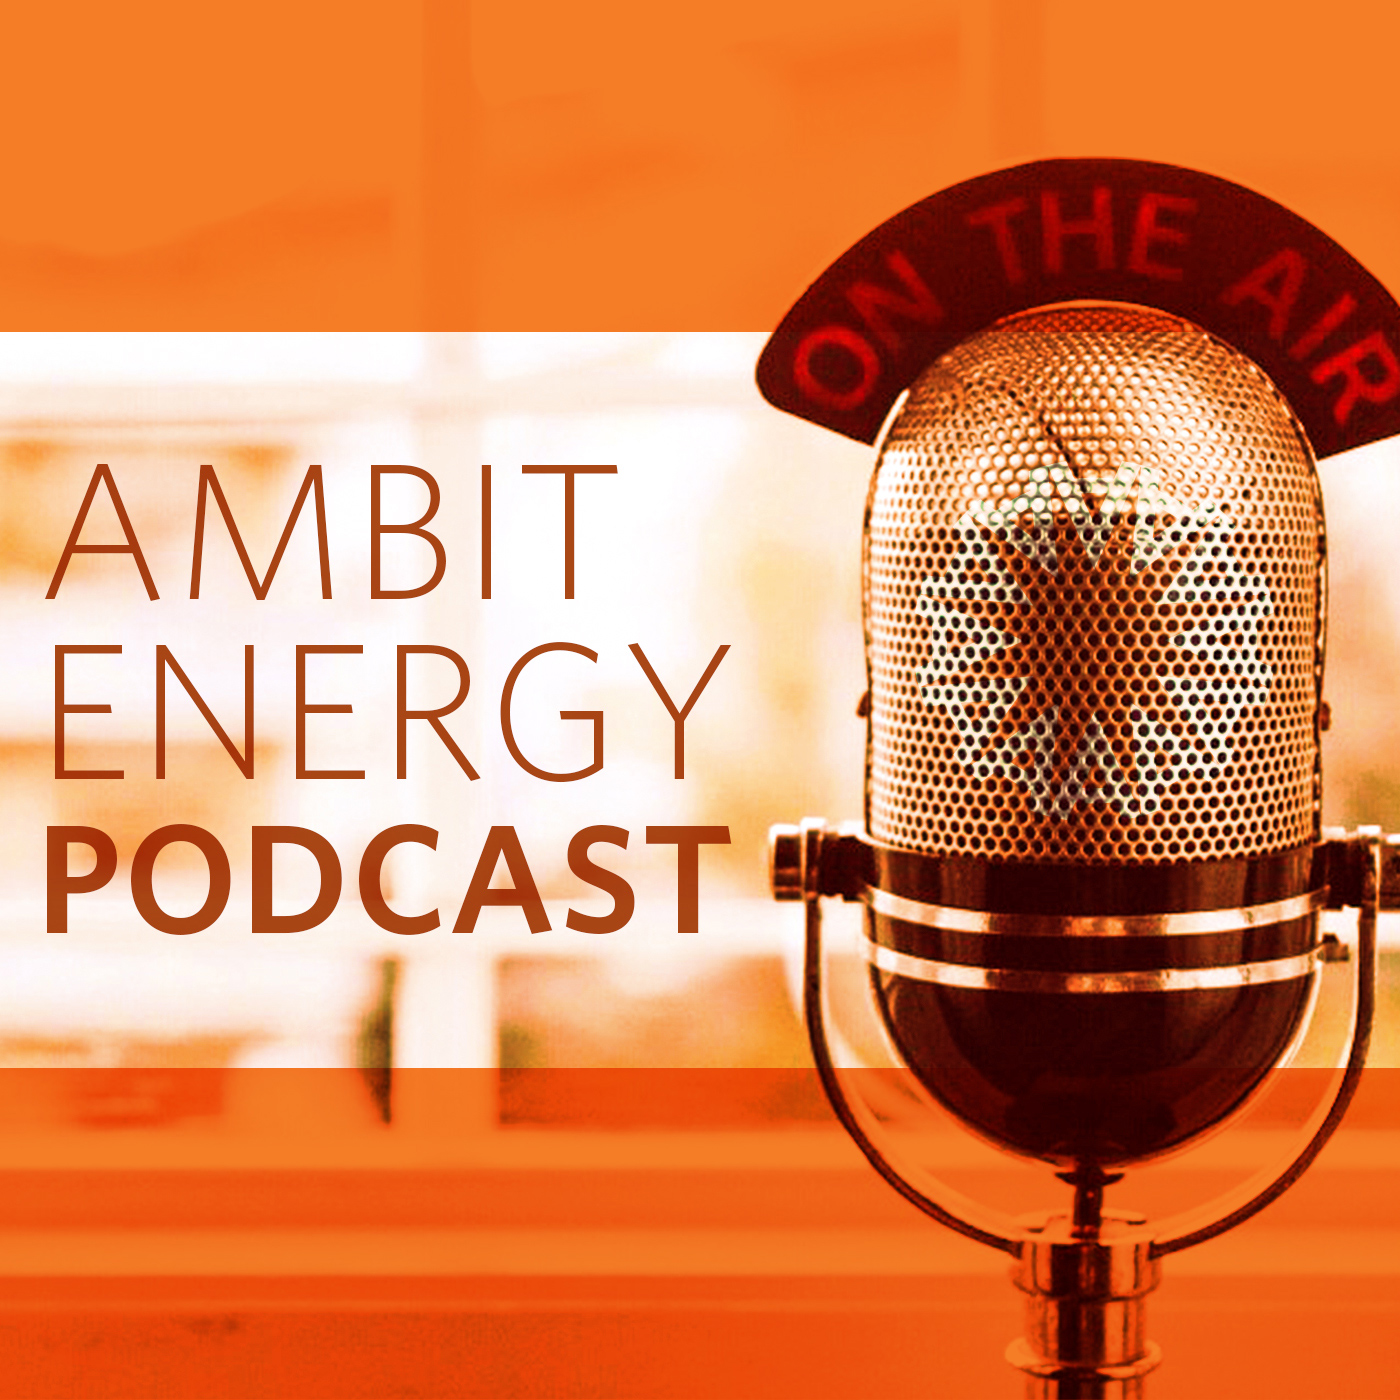 Ambit Energy Podcast